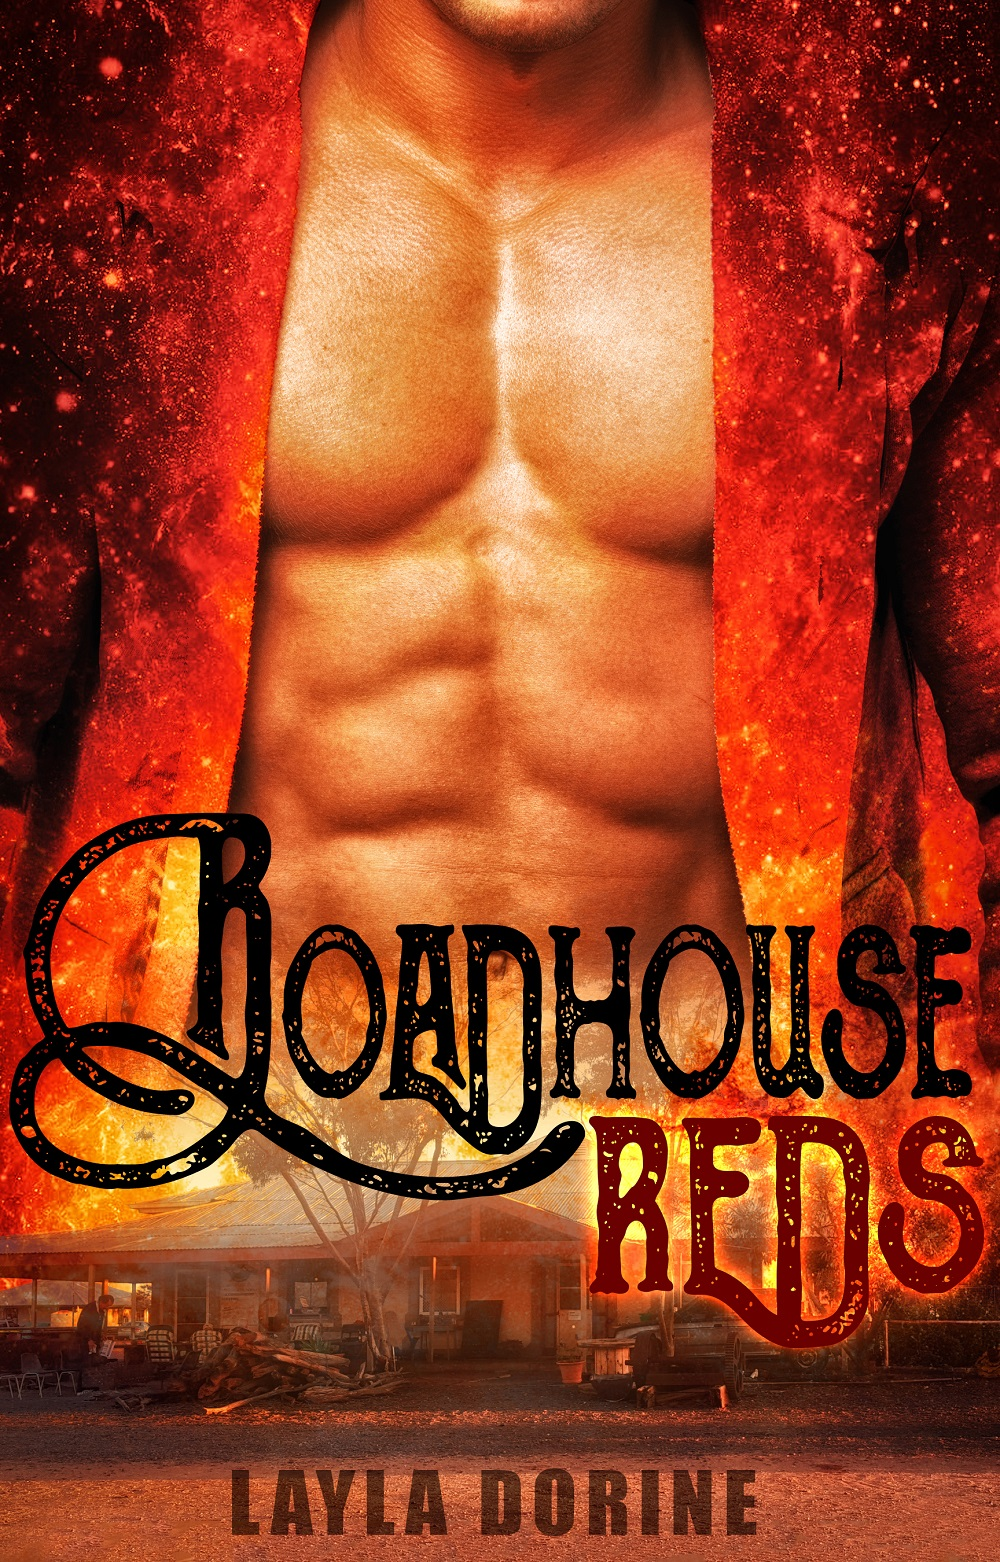 Roadhouse Reds